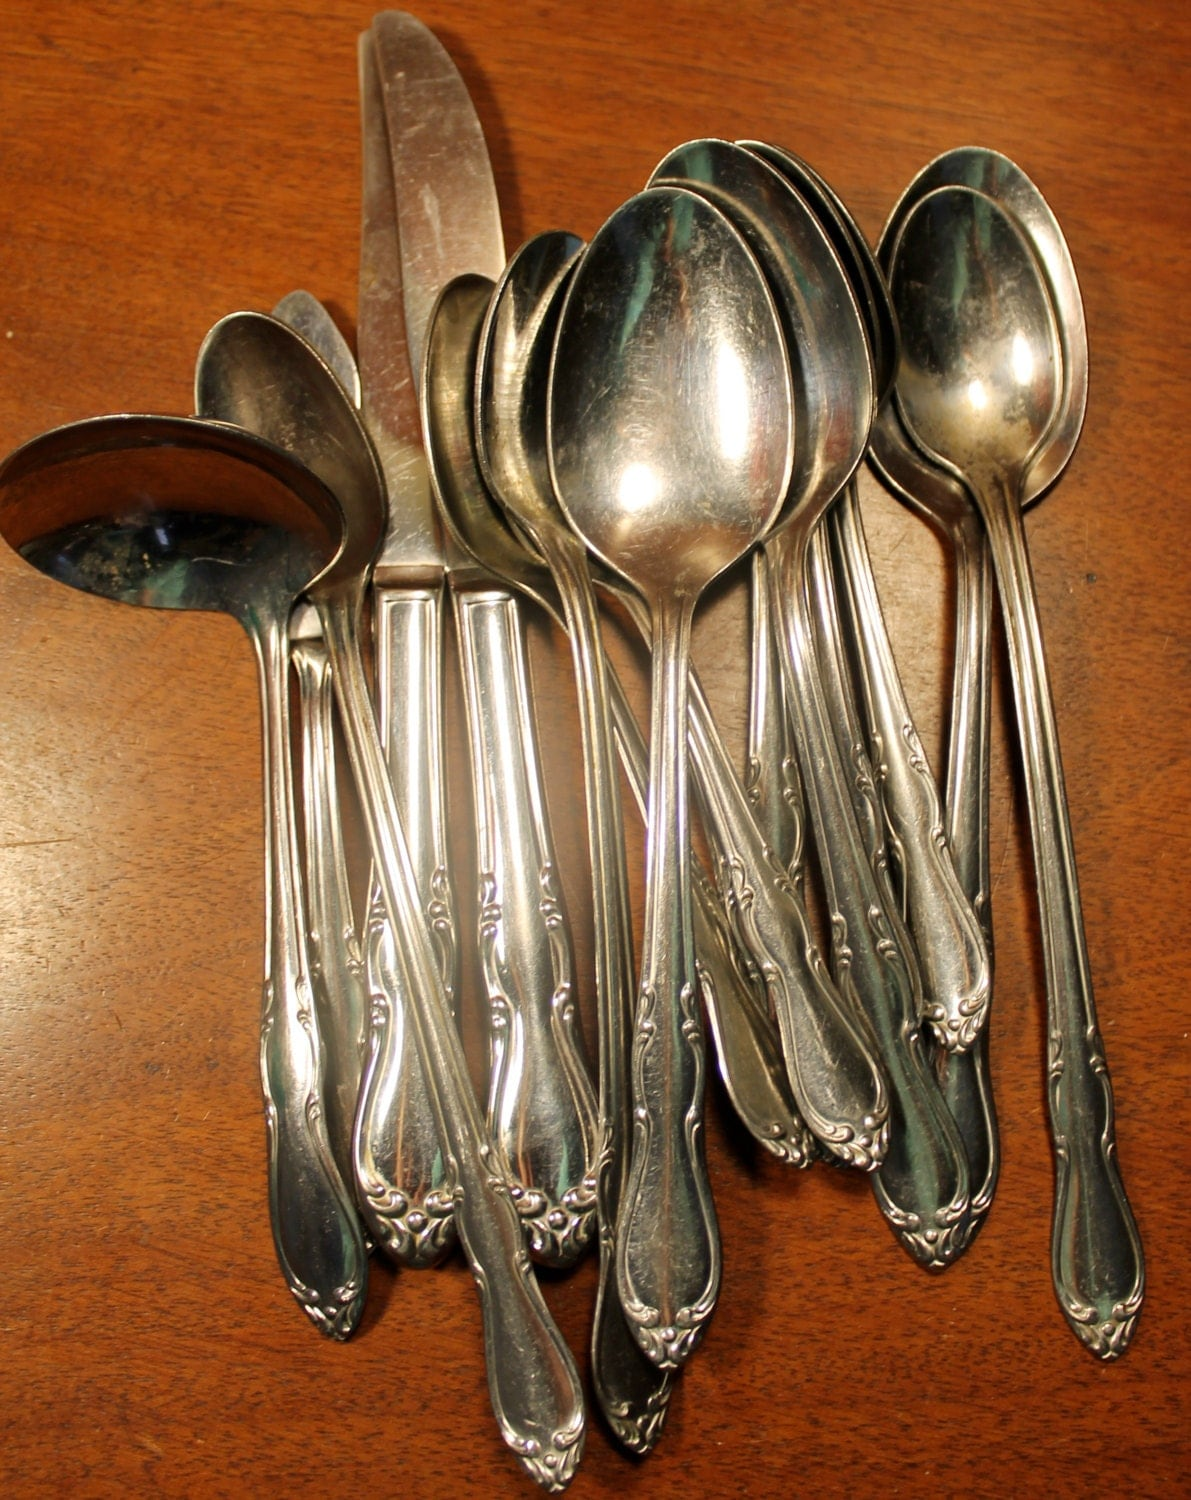 Stainless Flatware marked Minuet or Simeon George by AtomicHoliday